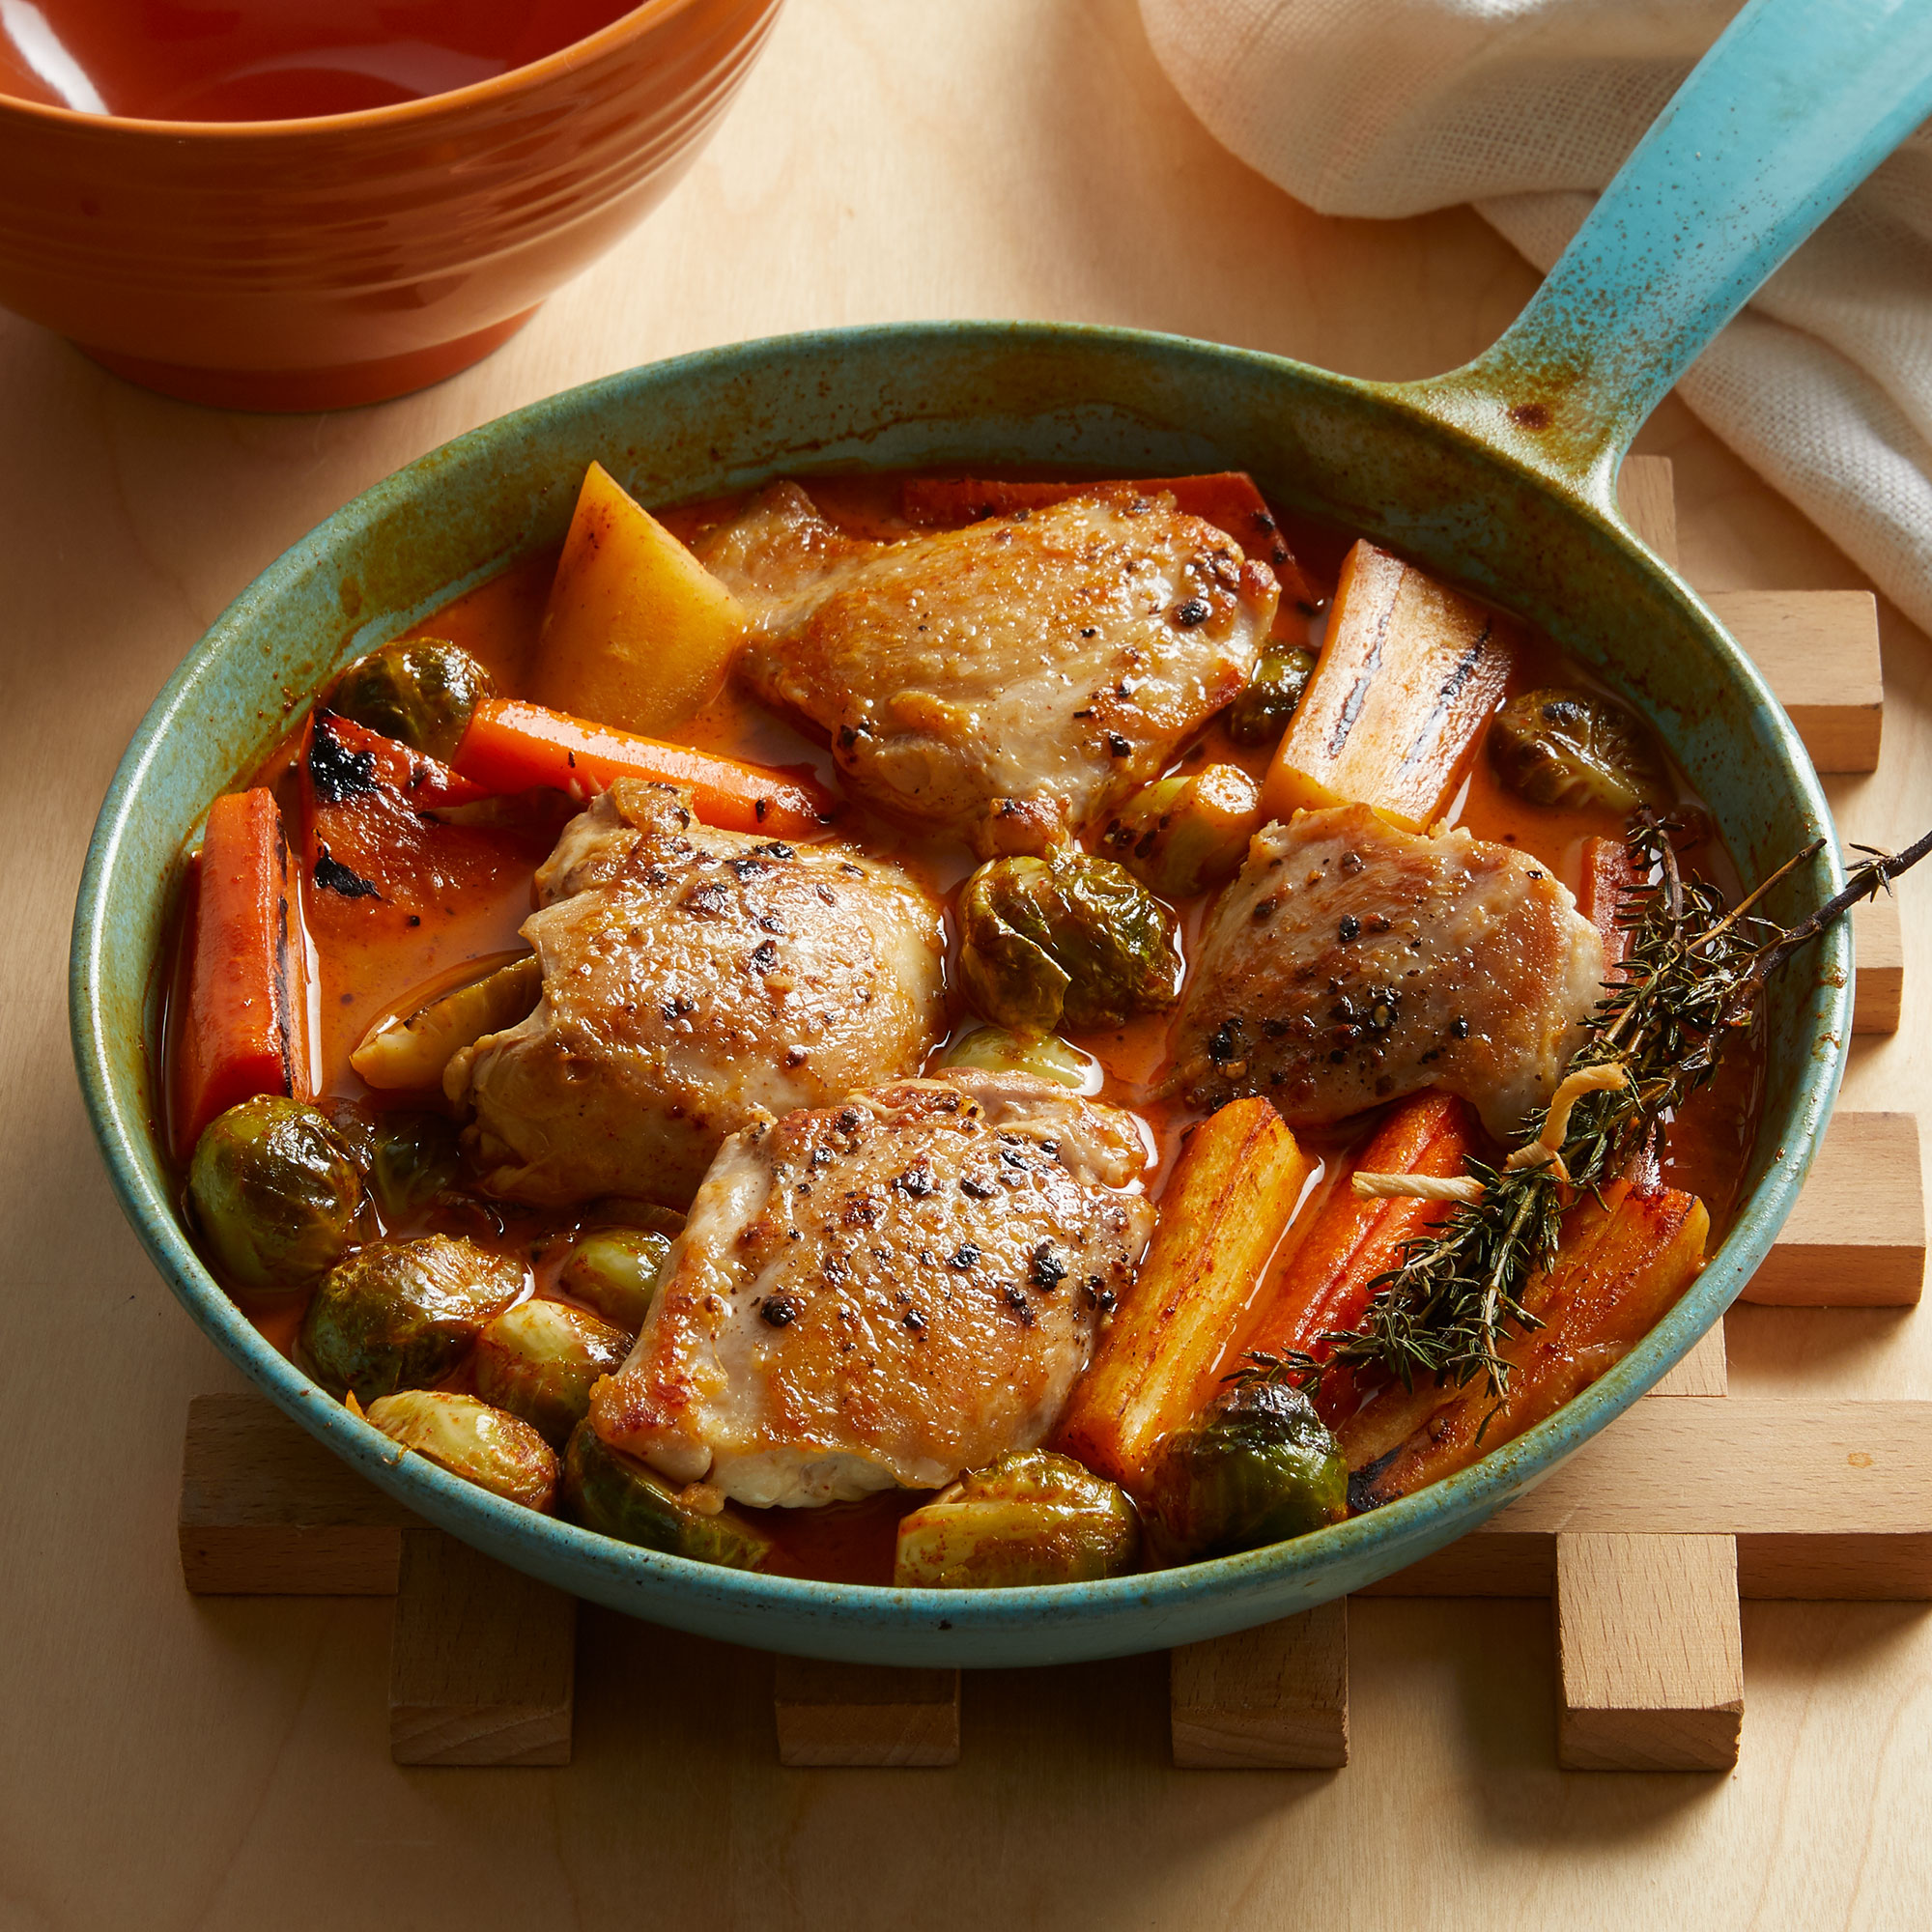 Braised Chicken & Fall Vegetables